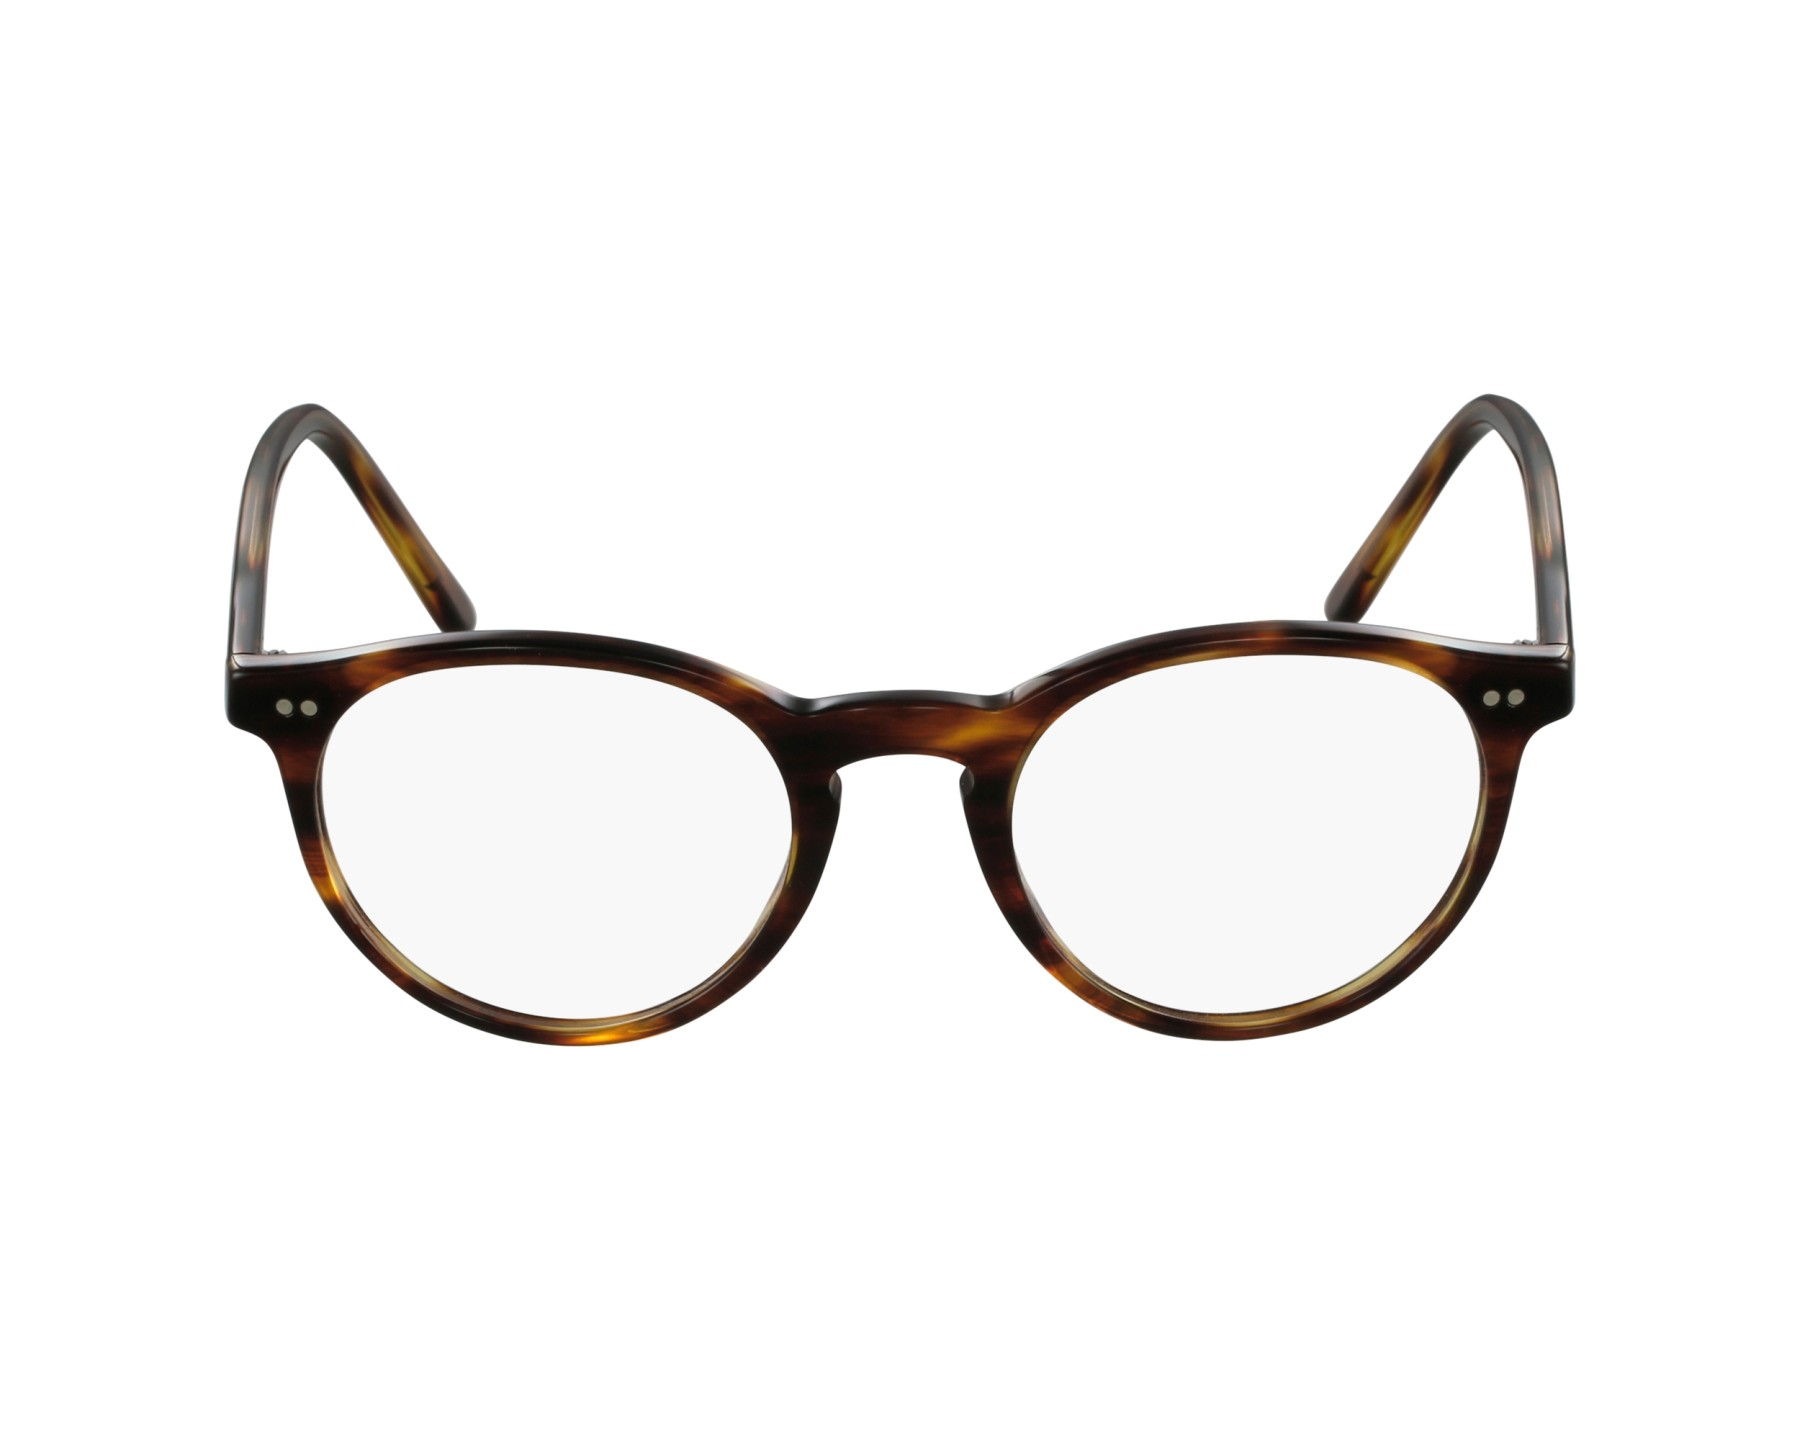 eyeglasses Polo Ralph Lauren PH-2083 5007 48-20 Havana profile view 95476d83ab